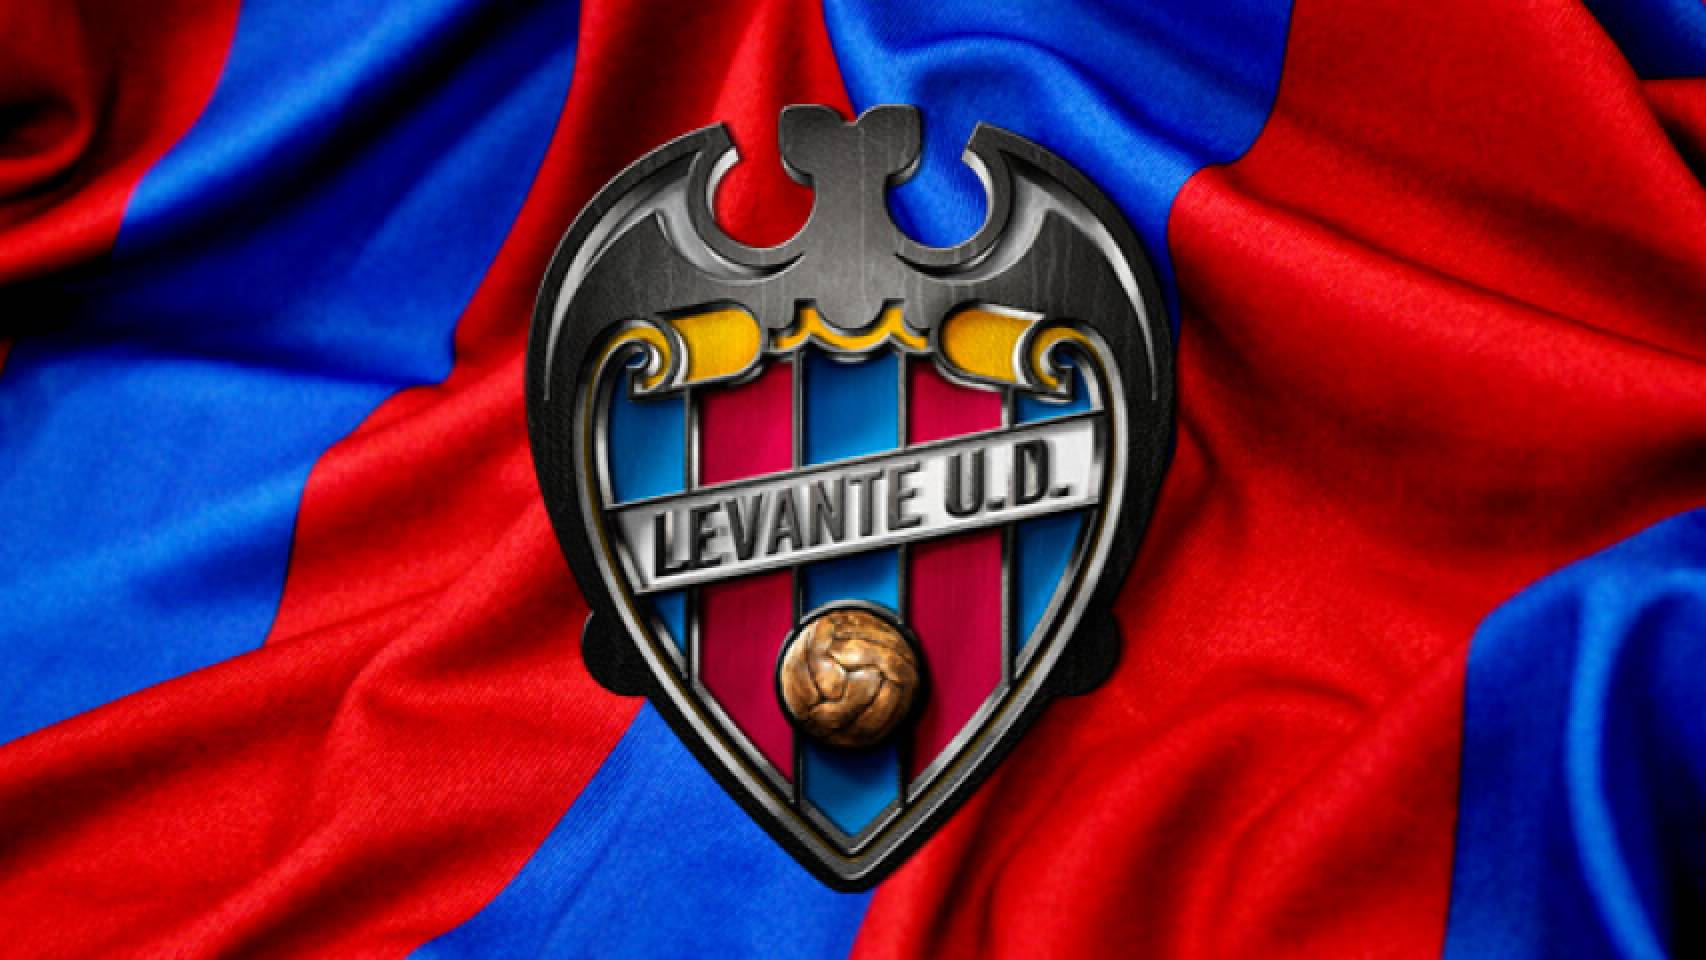 Comunicado del @LevanteUD